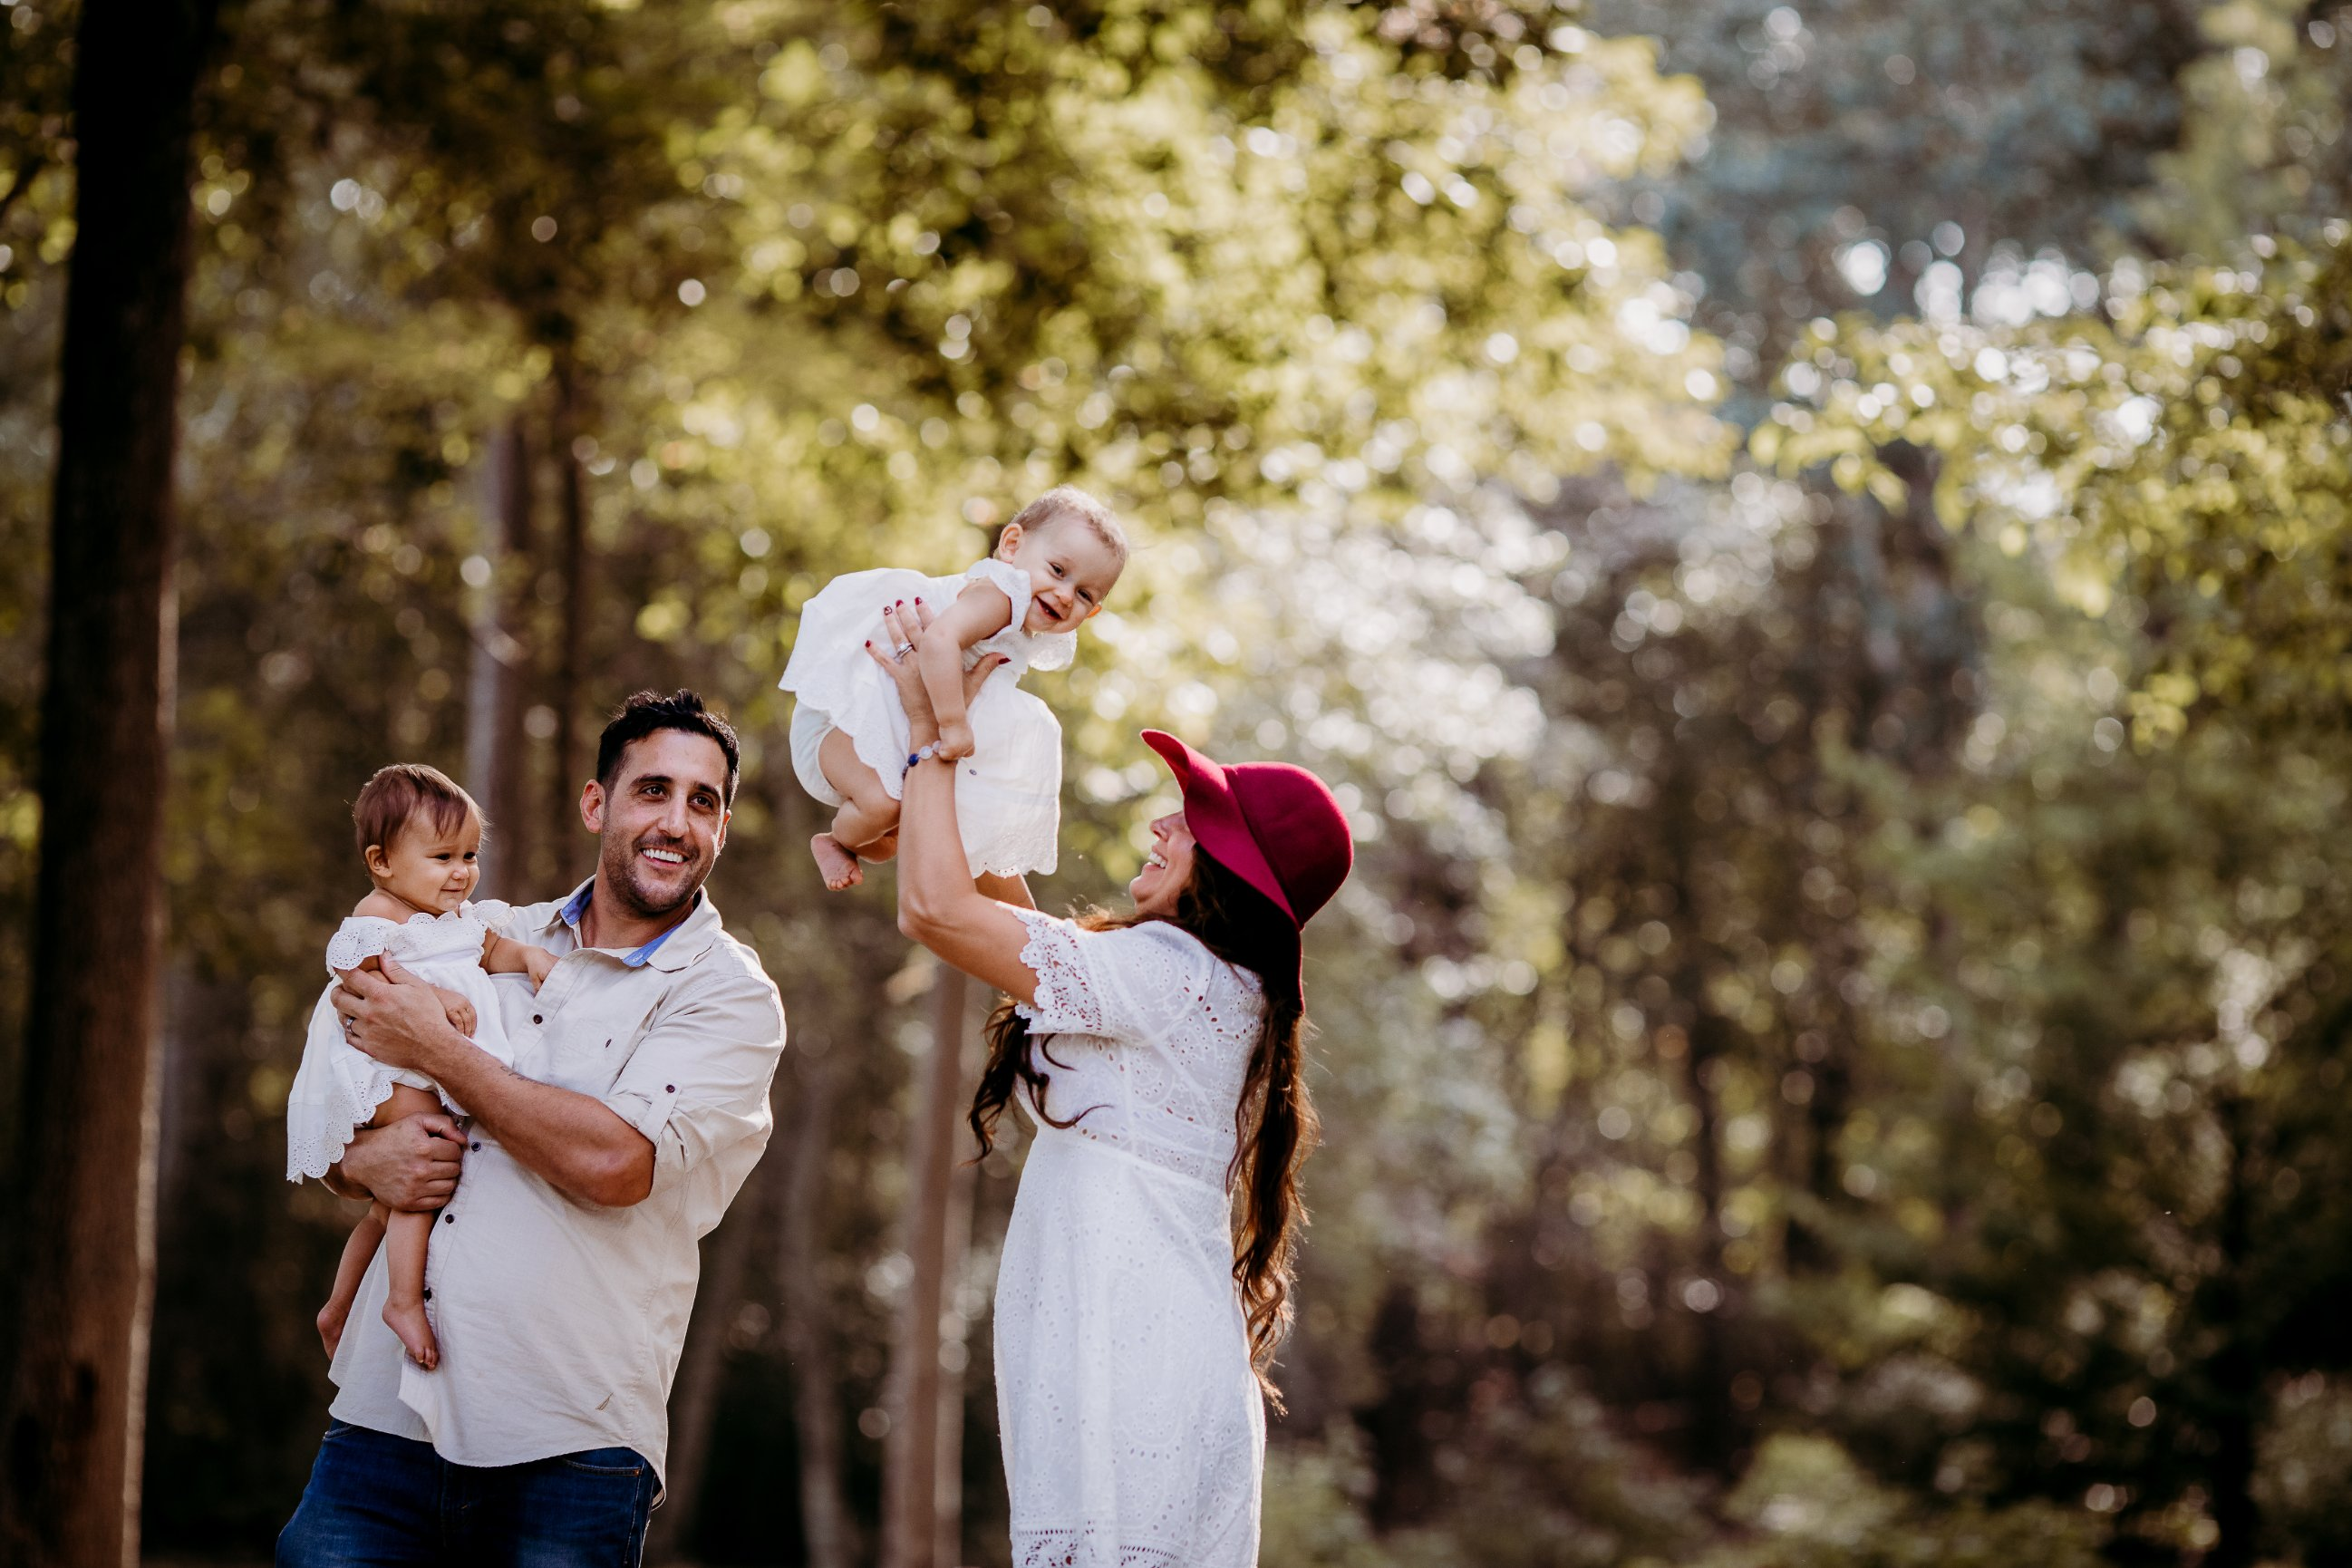 Lets face it family photo sessions can be challenging for not only the family but sometimes the photographer as well